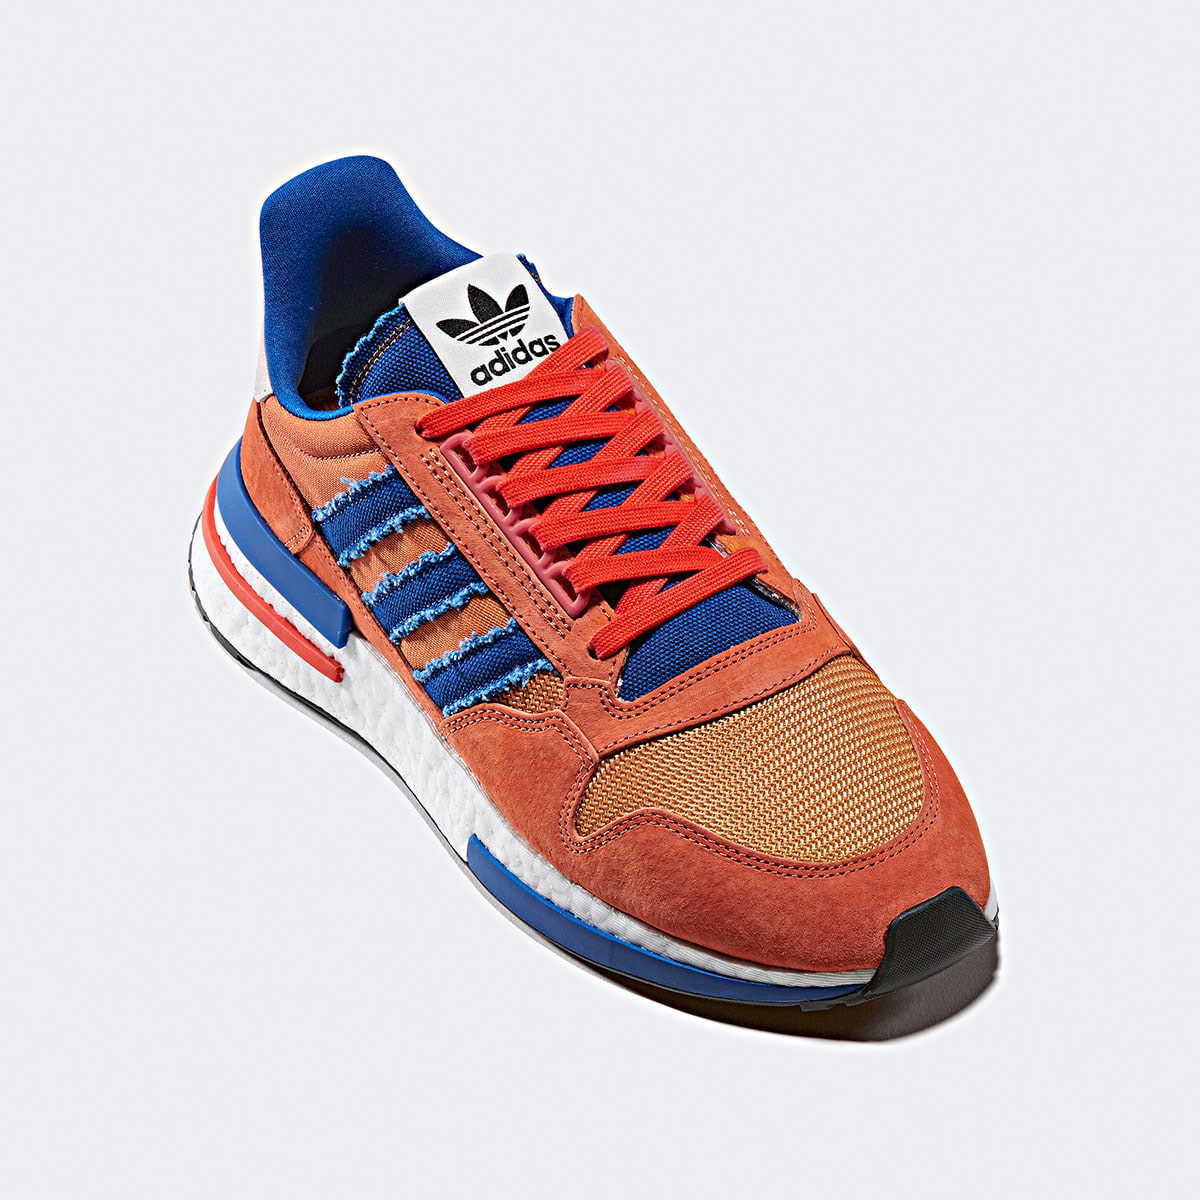 best website 1712c 7291b Adidas x Dragonball ZX 500 RM 'Son Goku' (Orange, Collegiate ...